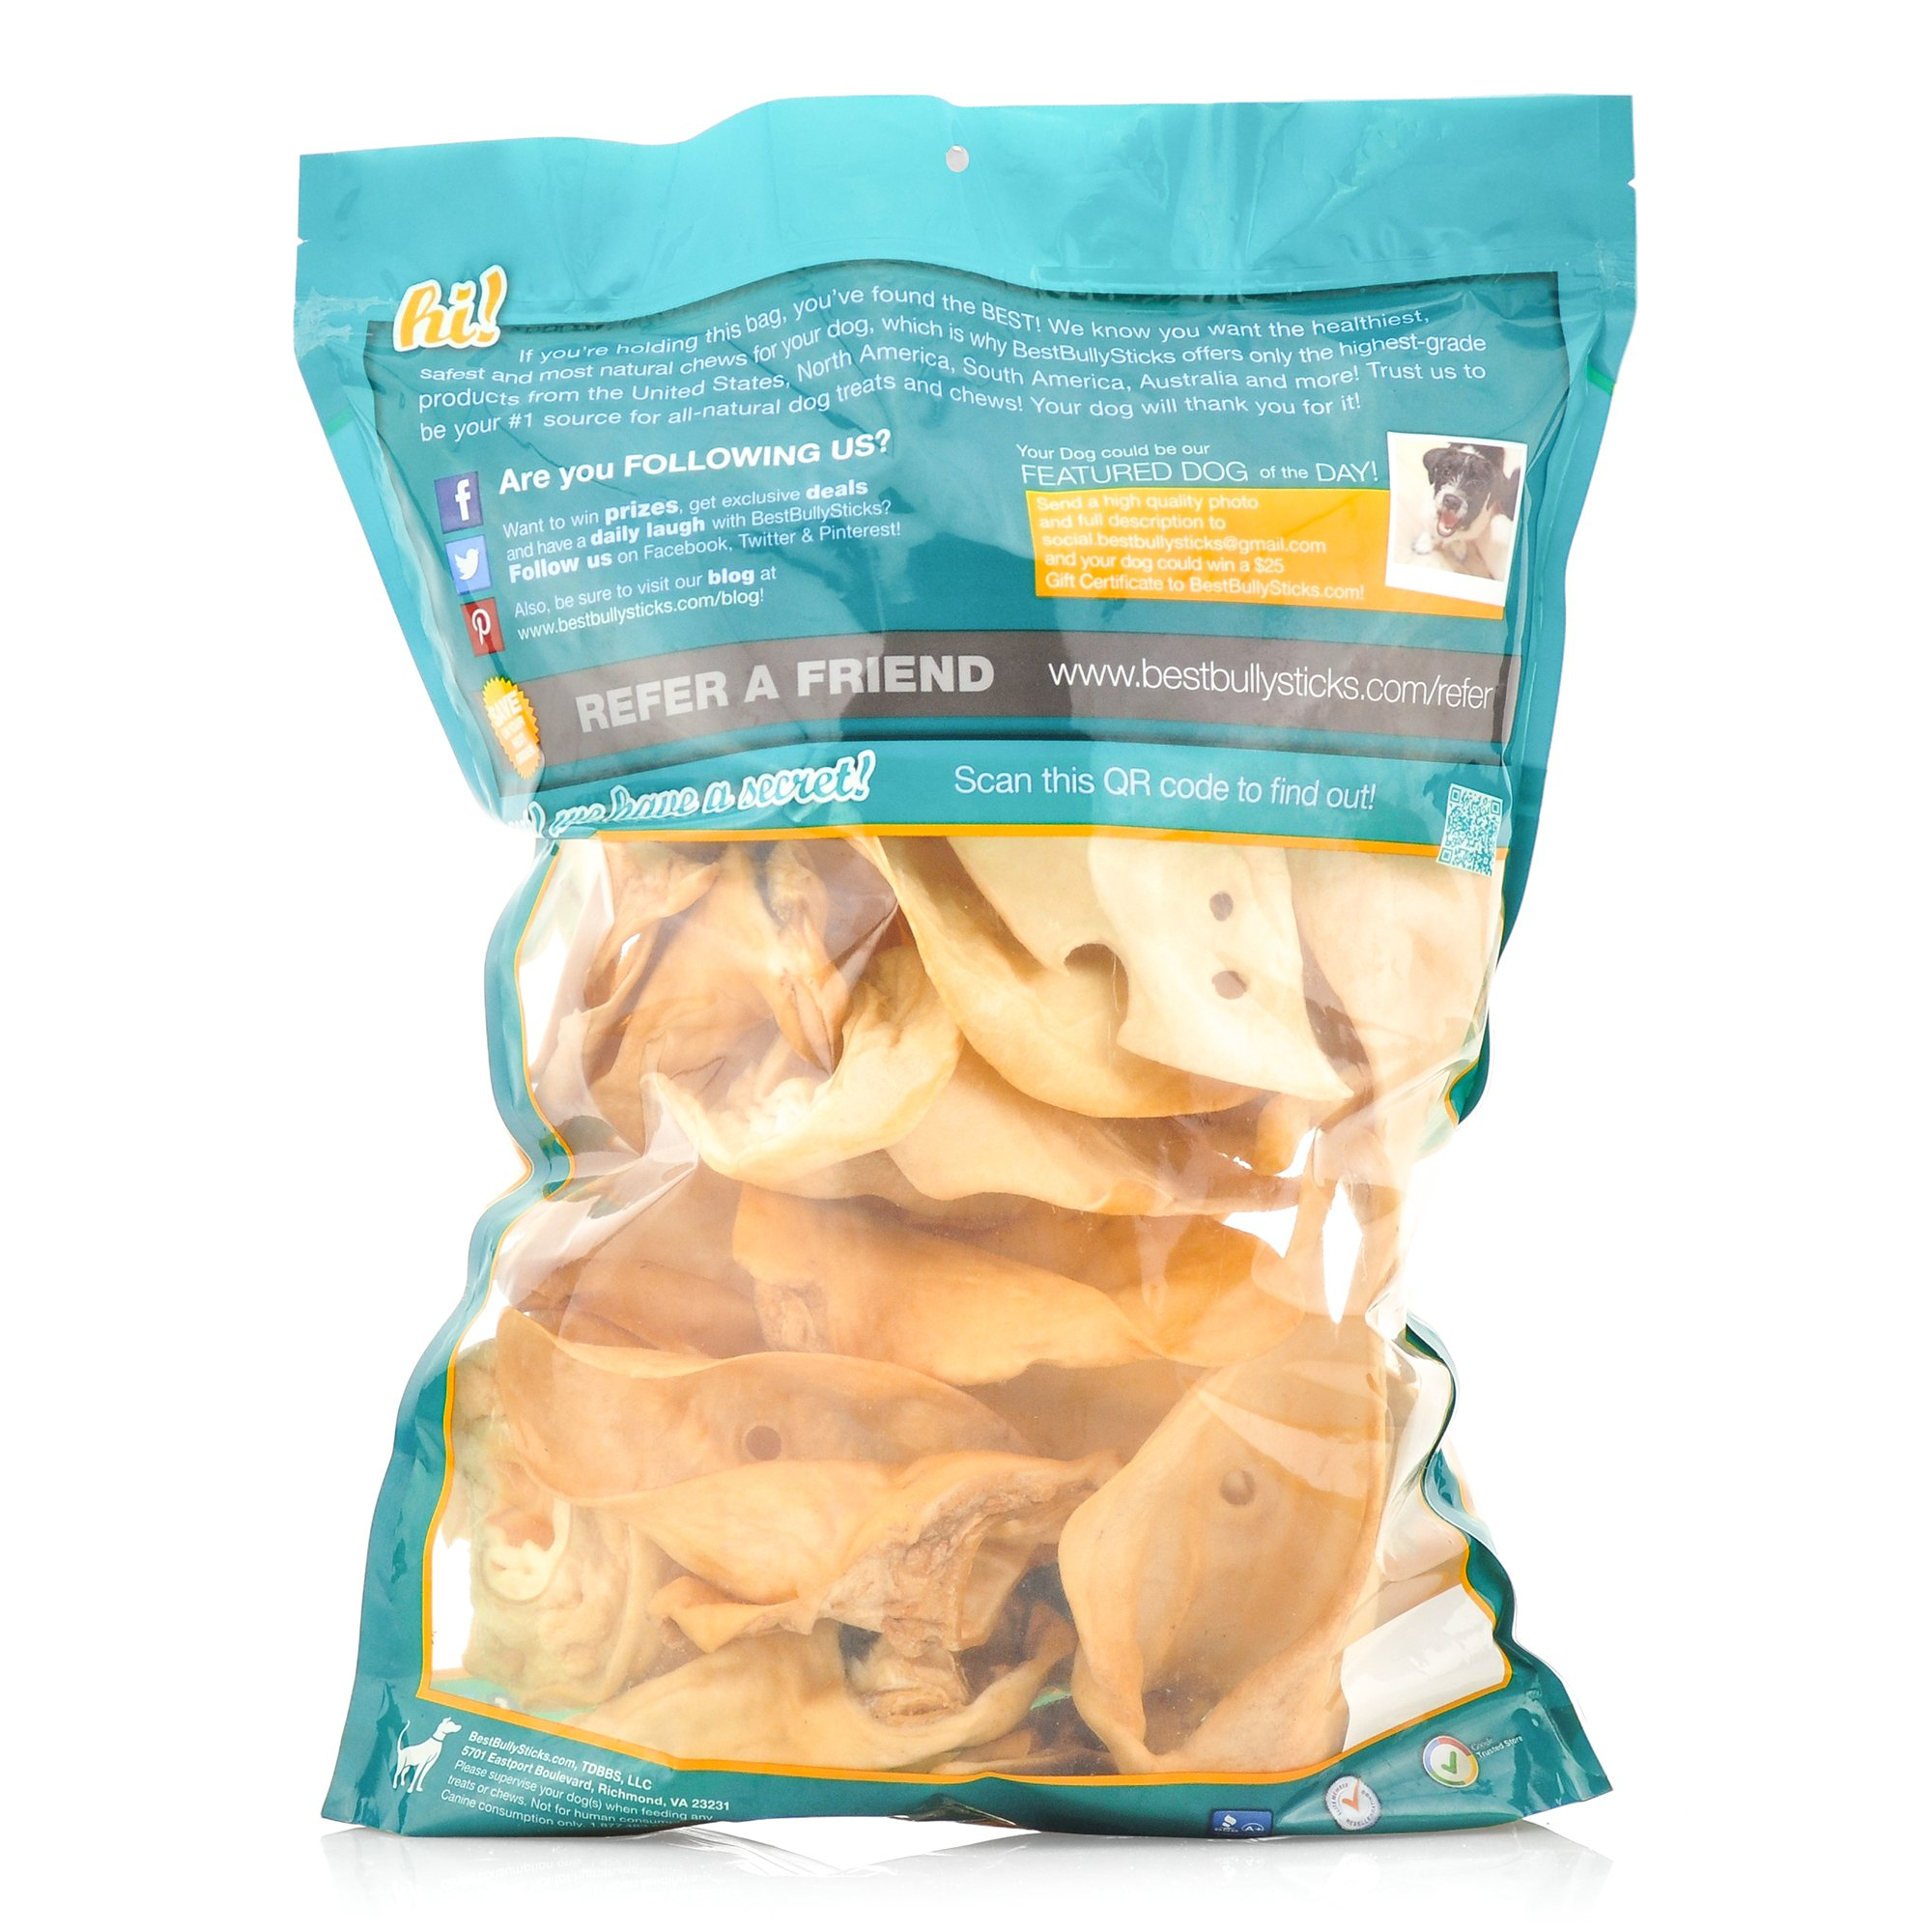 Best Bully Sticks Prime Thick-Cut Cow Ear Dog Chews by (12 Pack) Sourced From All Natural, Free Range Grass Fed Cattle with No Hormones, Additives or Chemicals - Hand-Inspected and USDA/FDA Approved by Best Bully Sticks (Image #2)